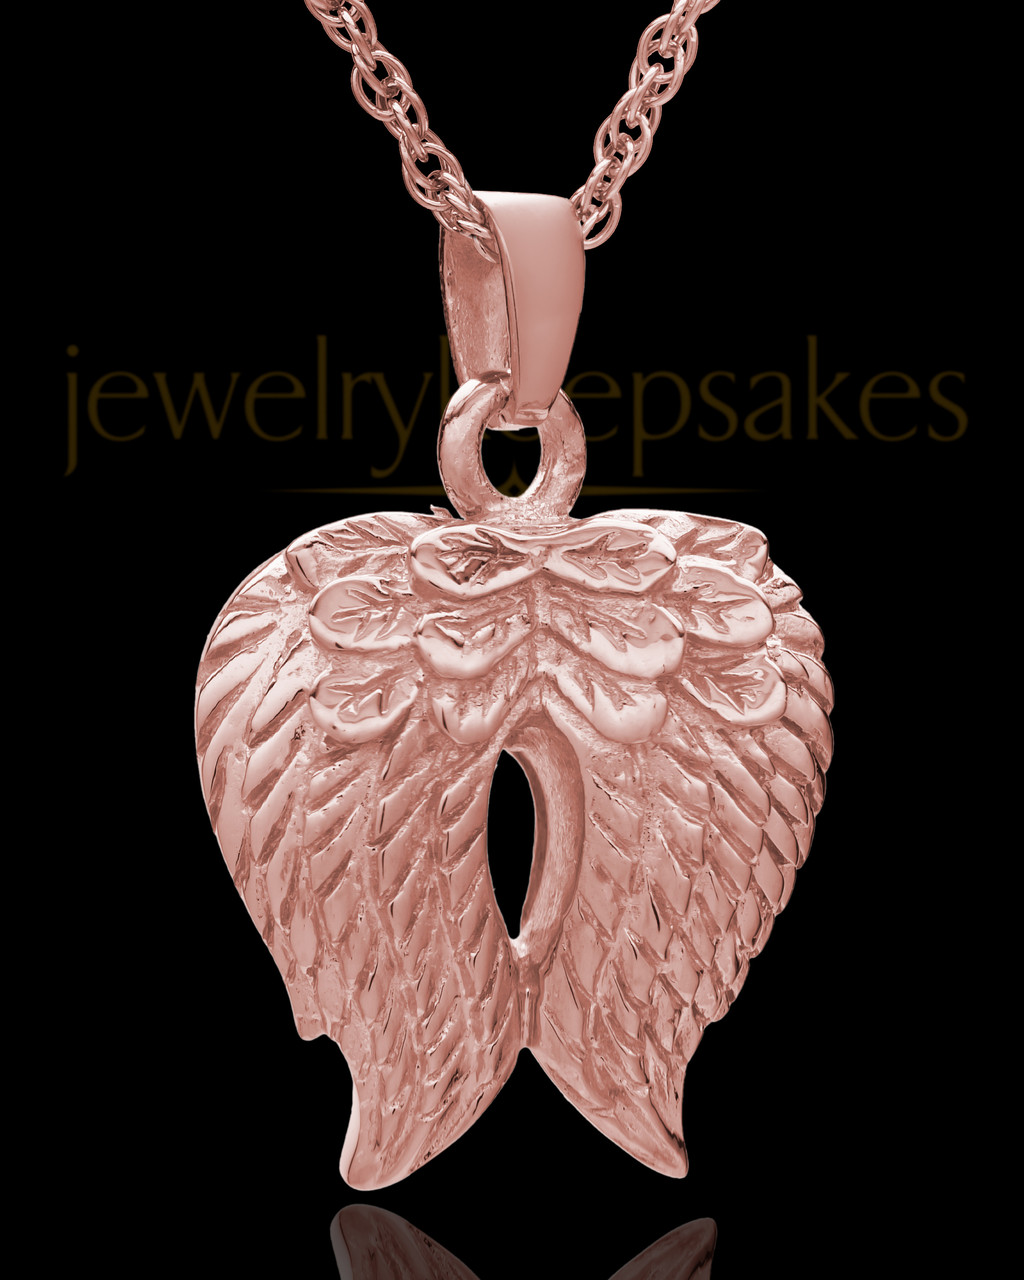 Heart Cremation Memorial Keepsake Pendant Necklace Jewelry with Fill Kit and Gift Box WK Son Angel Wing Urn Necklace for Ashes